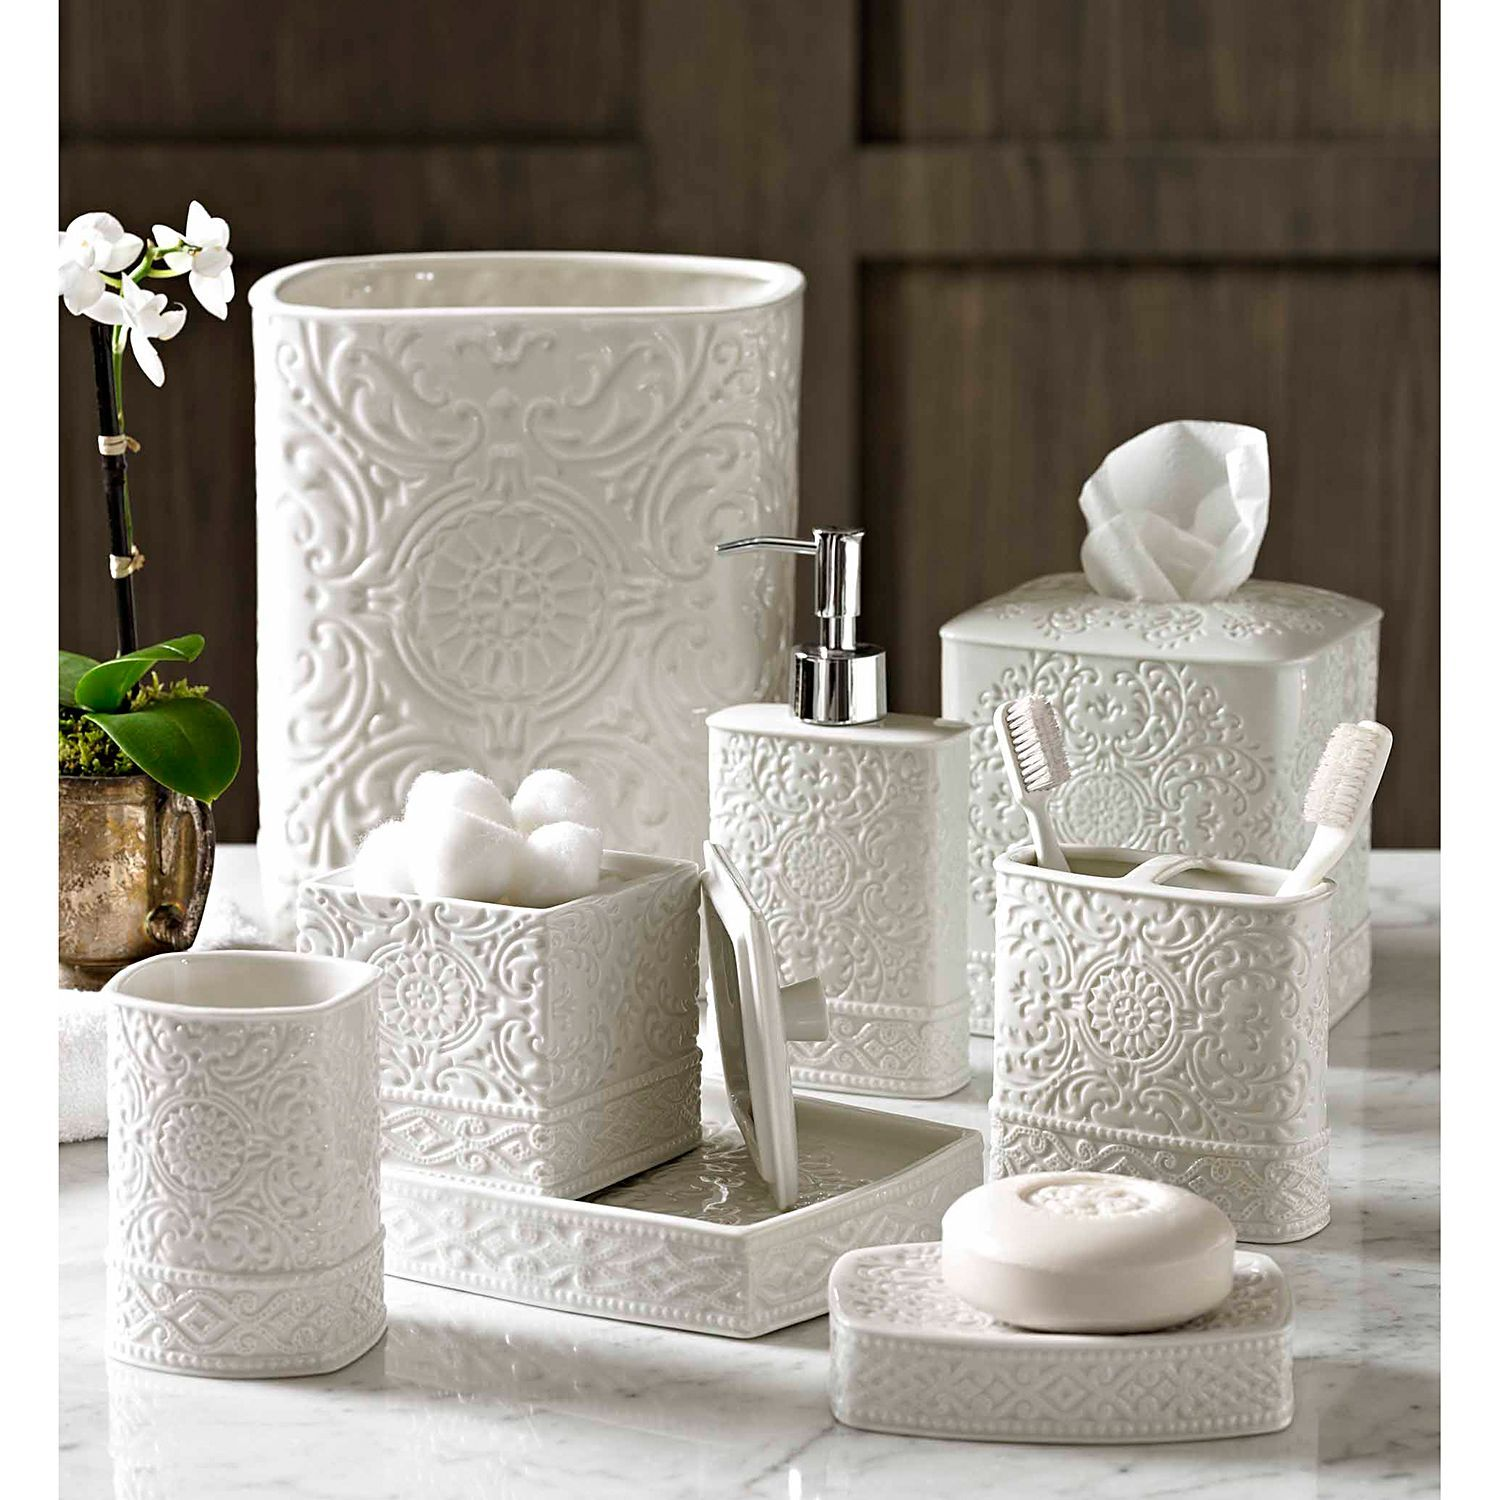 Shop bathroom accessories - Trump Home Bedminster Damask Bath Accessory Collection This Stylish Bath Accessory Collection Will Provide An Elegant